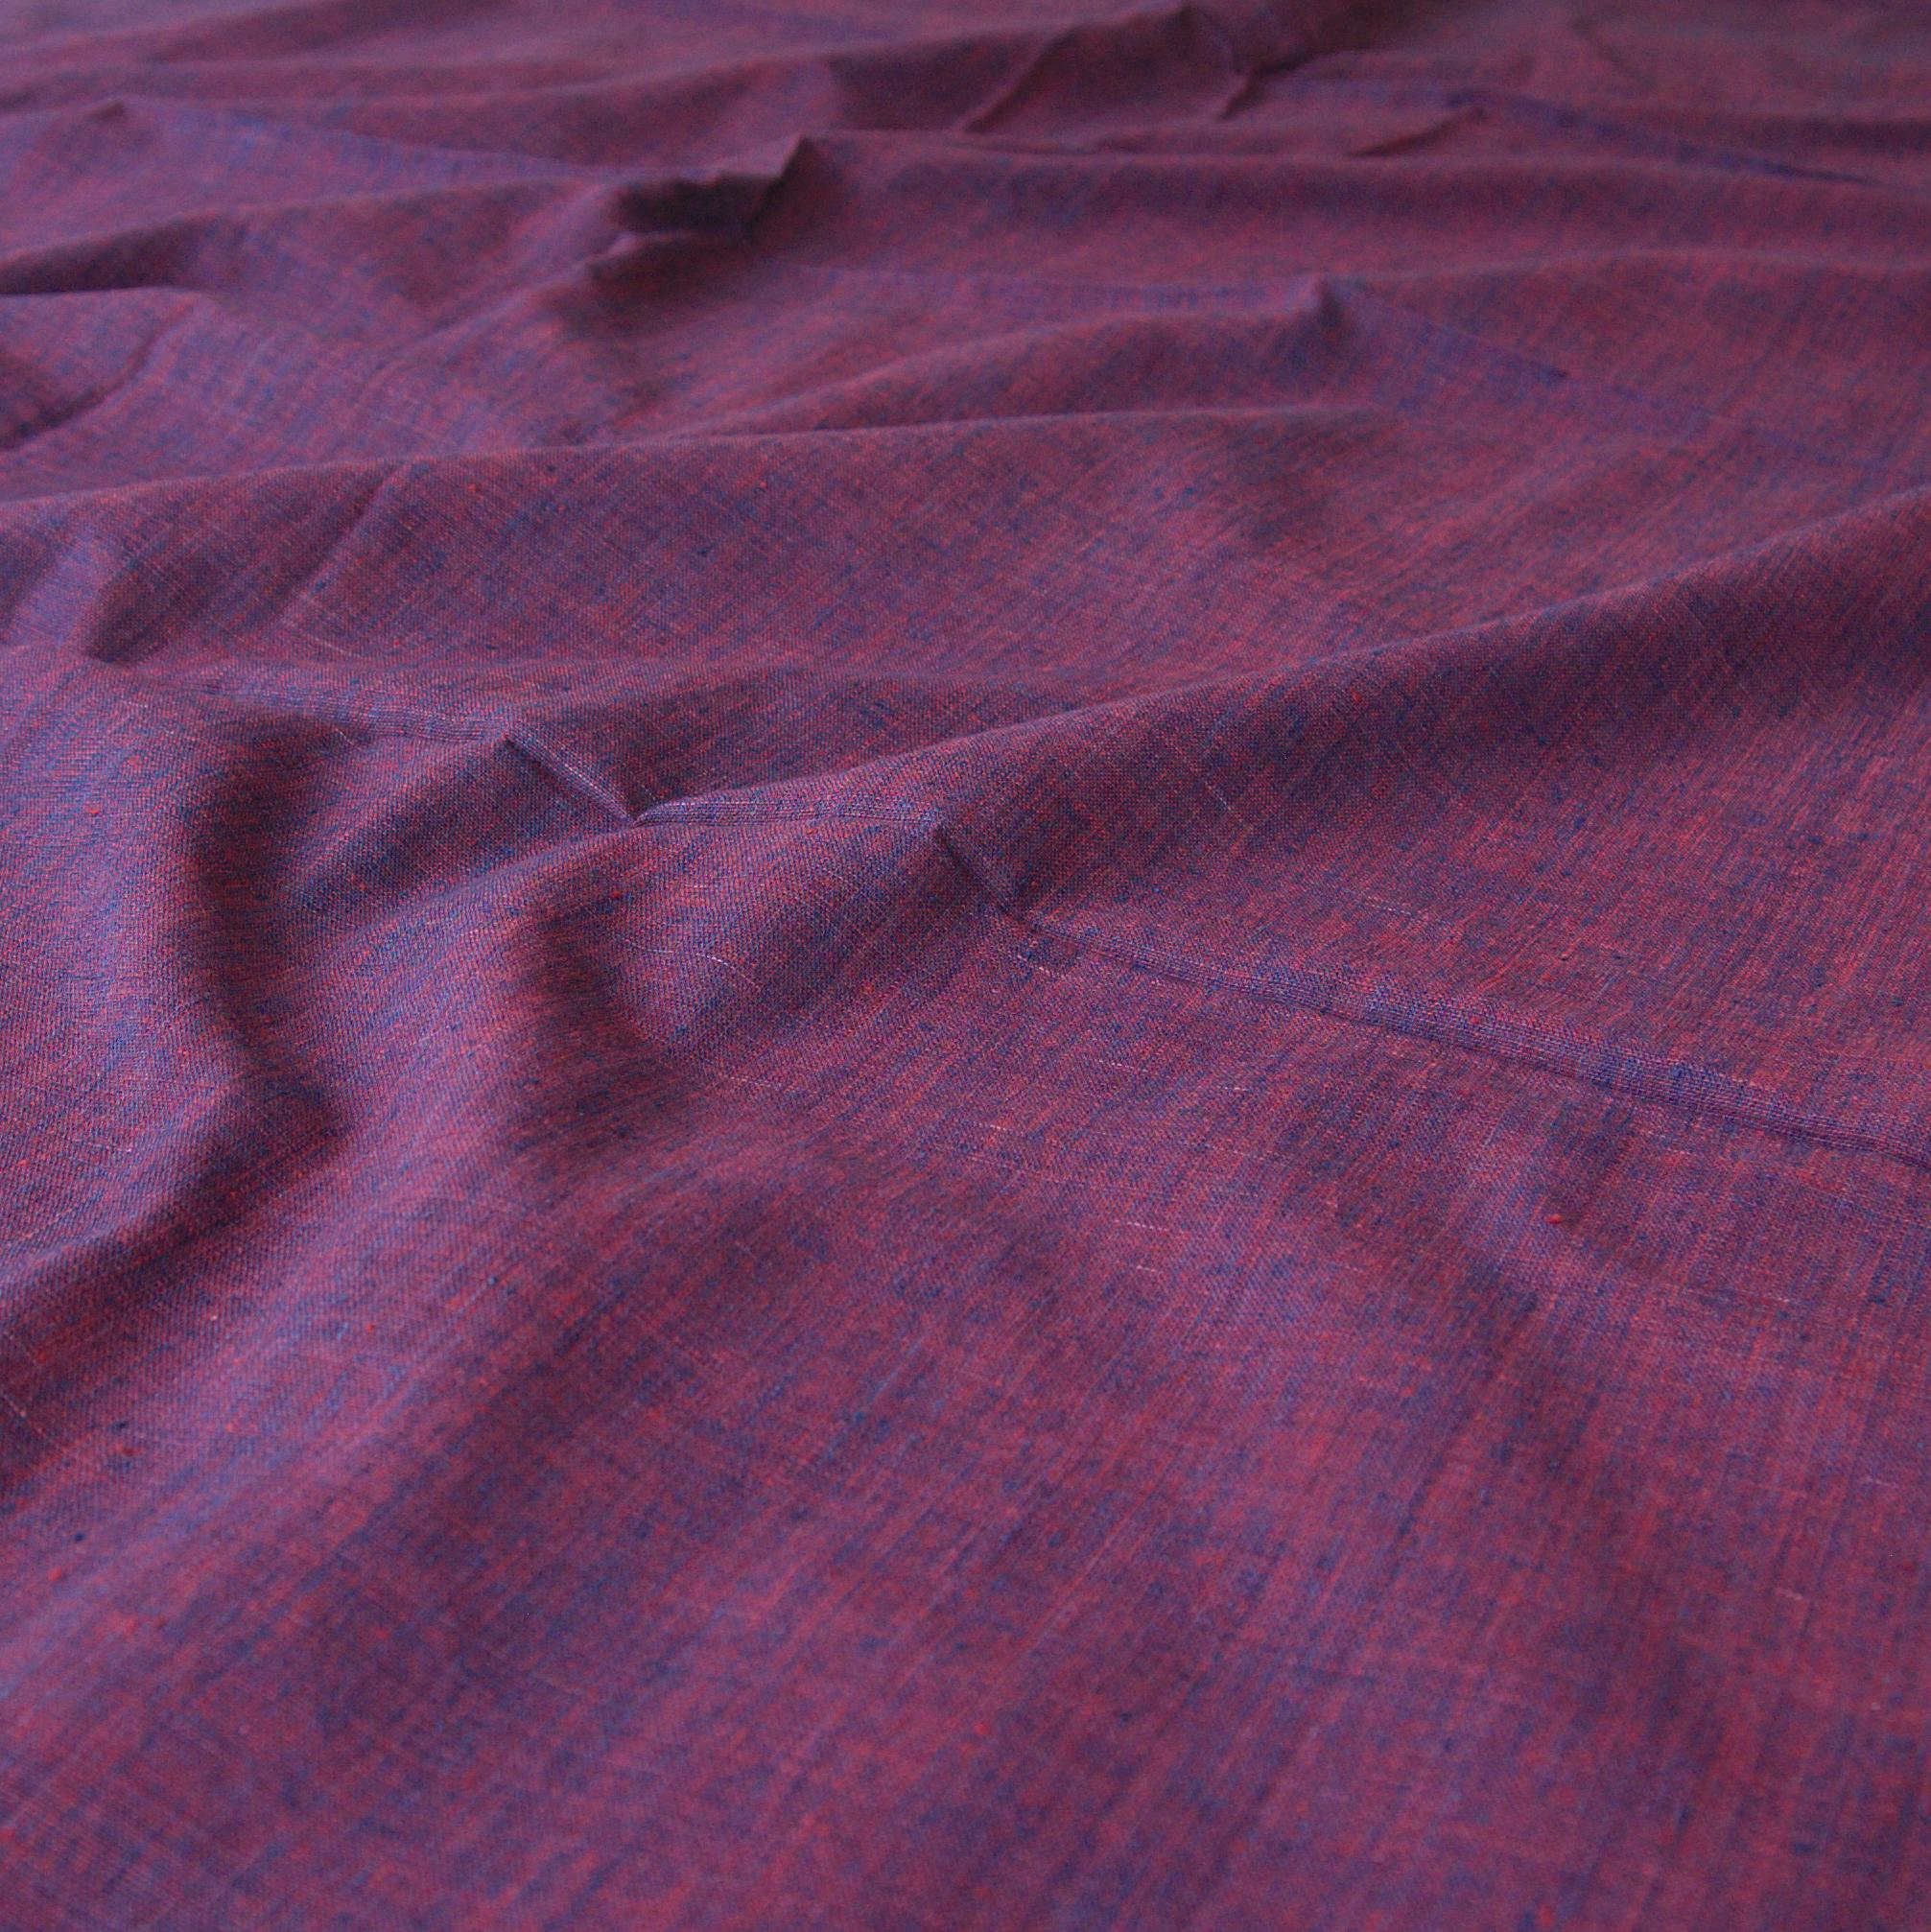 100 % Handloom Woven Cotton - Cross Colour - Natural Indigo Warp, Red Alizarin Weft - Cross Colour - Contrast